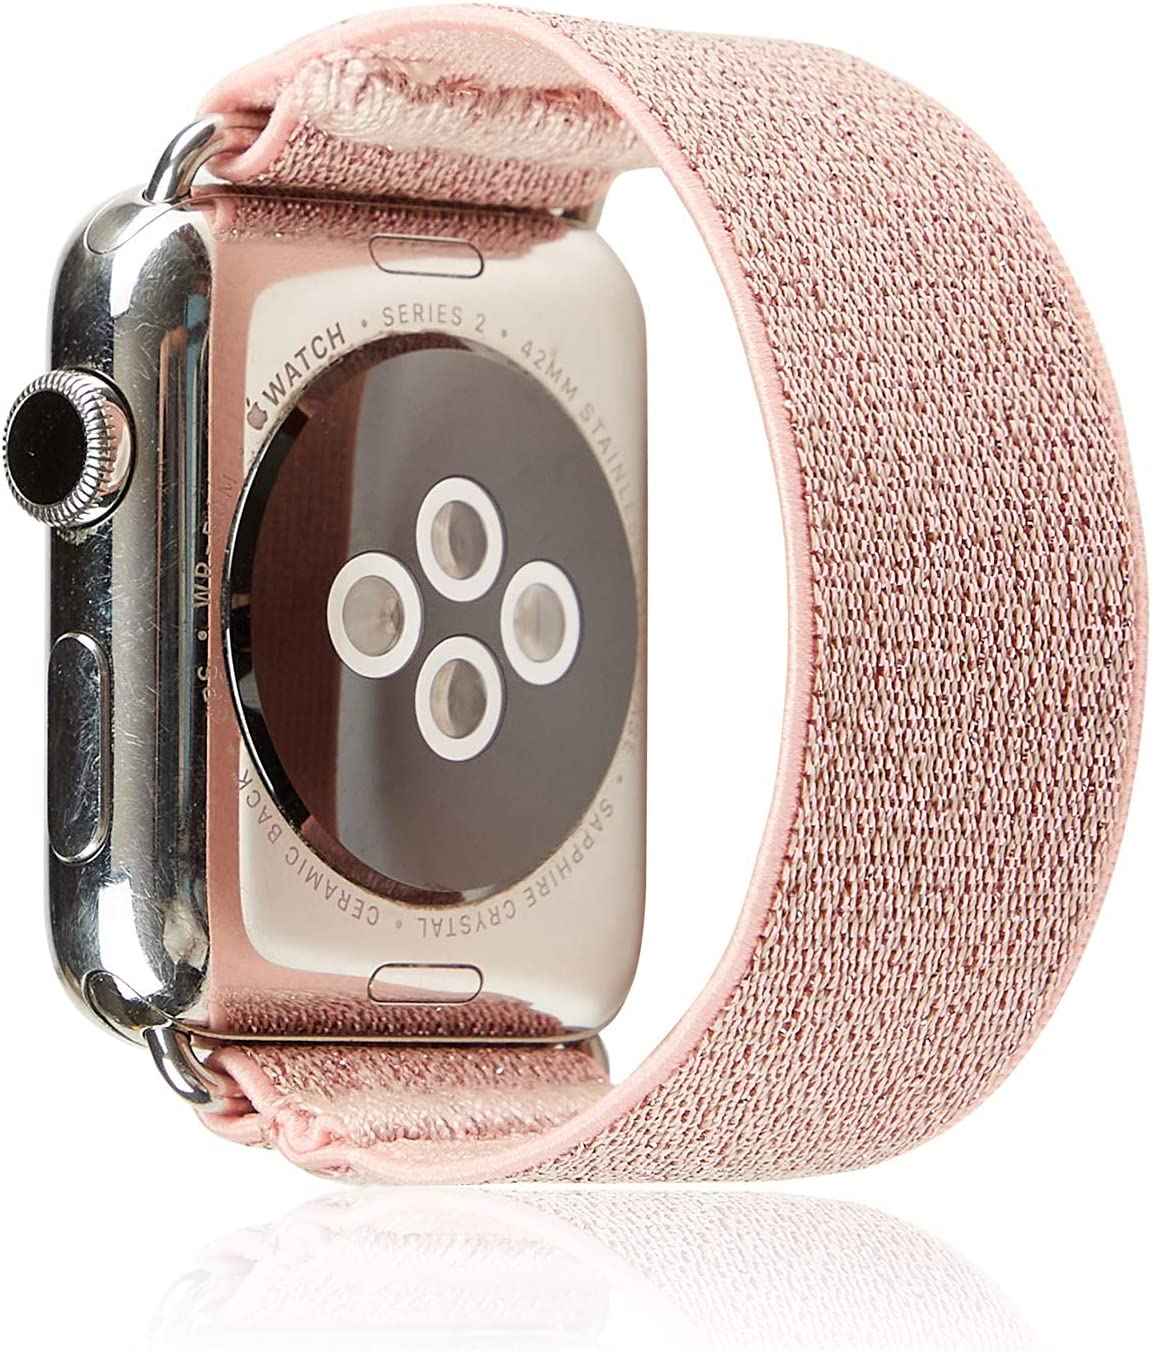 Elastic Band Compatible for Apple Watch, Scrunchie Stretch Wristbands Replacement Bracelet Loop Sport Strap for iWatch Series 1 2 3 4 5, Men Women Girls, Glitter Pink, 38/40mm, M